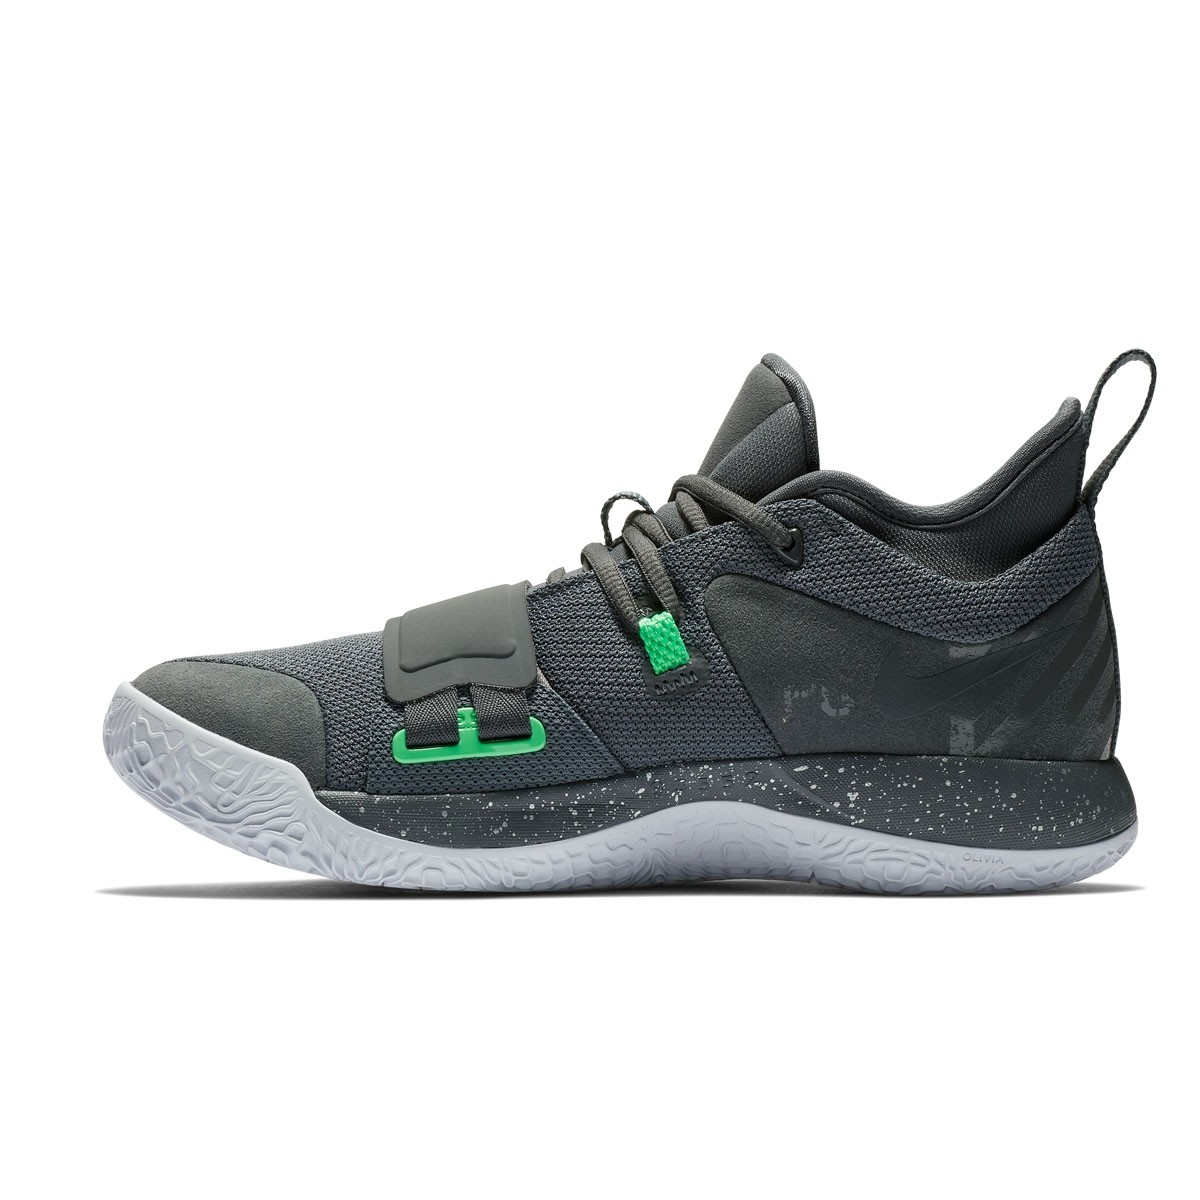 128e5e10ac25 Buy Nike PG 2.5  Fighter Jet  Basketball shoes   sneakers